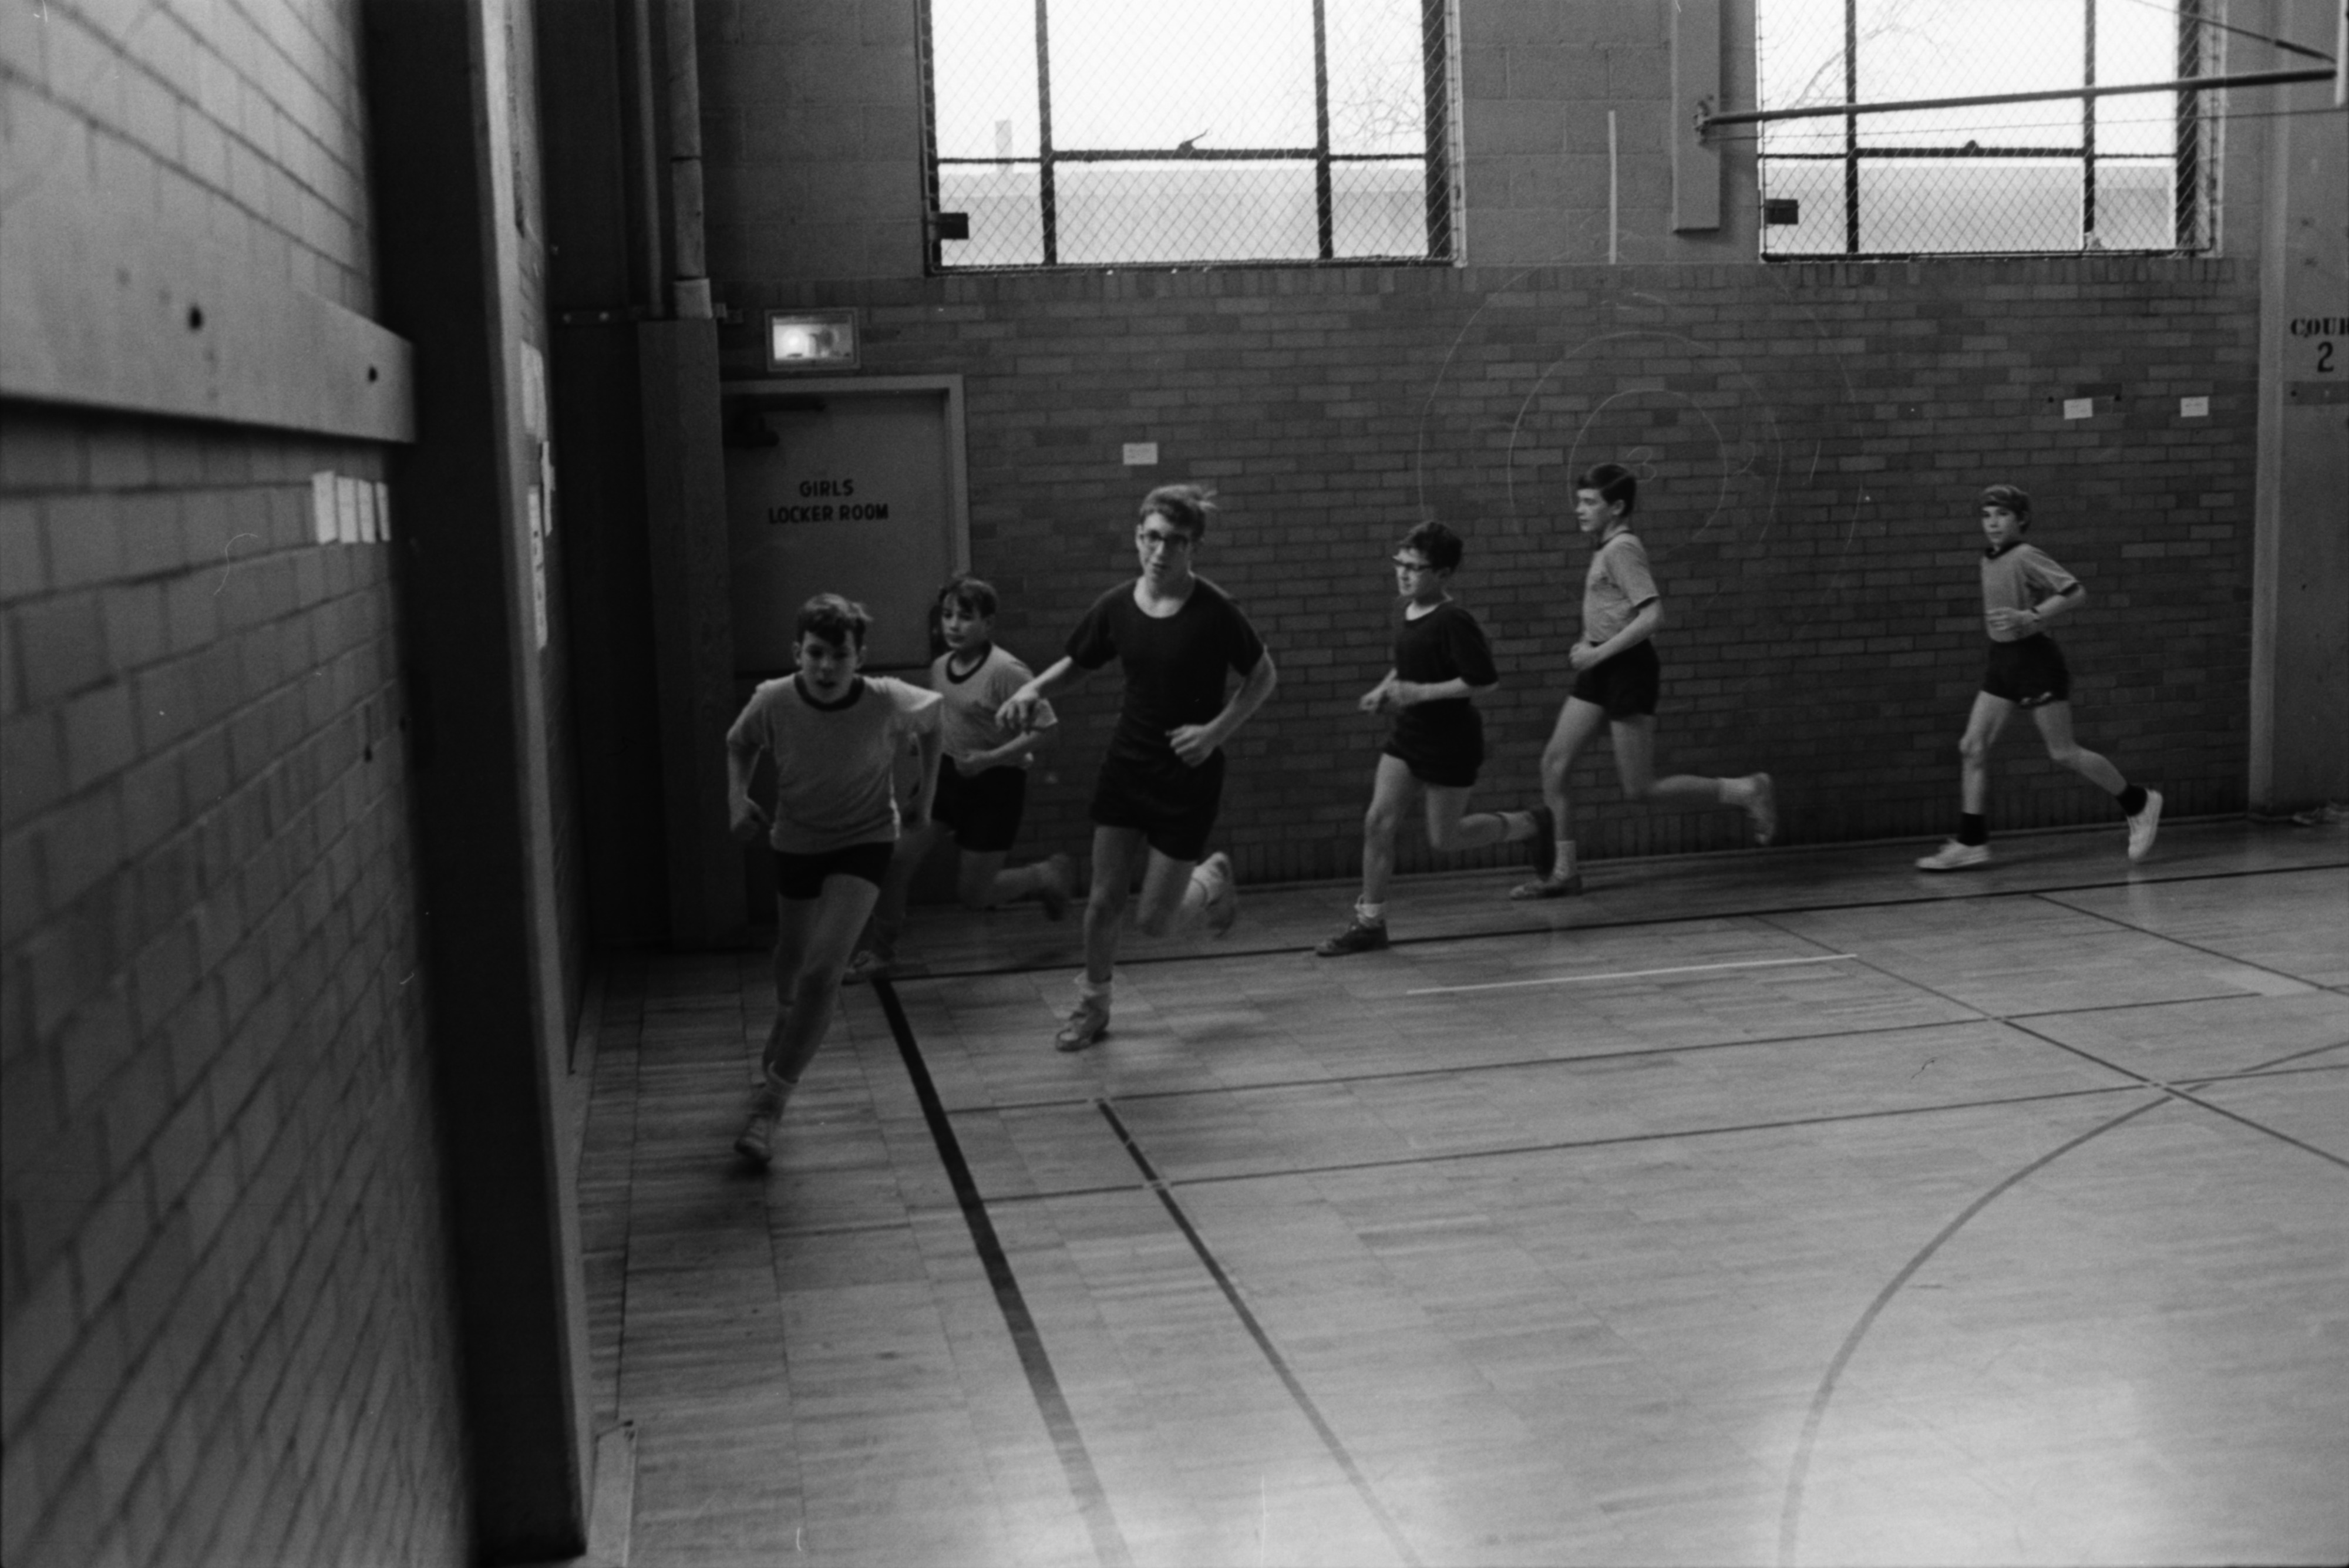 Slauson students running in gym, February 1969 image